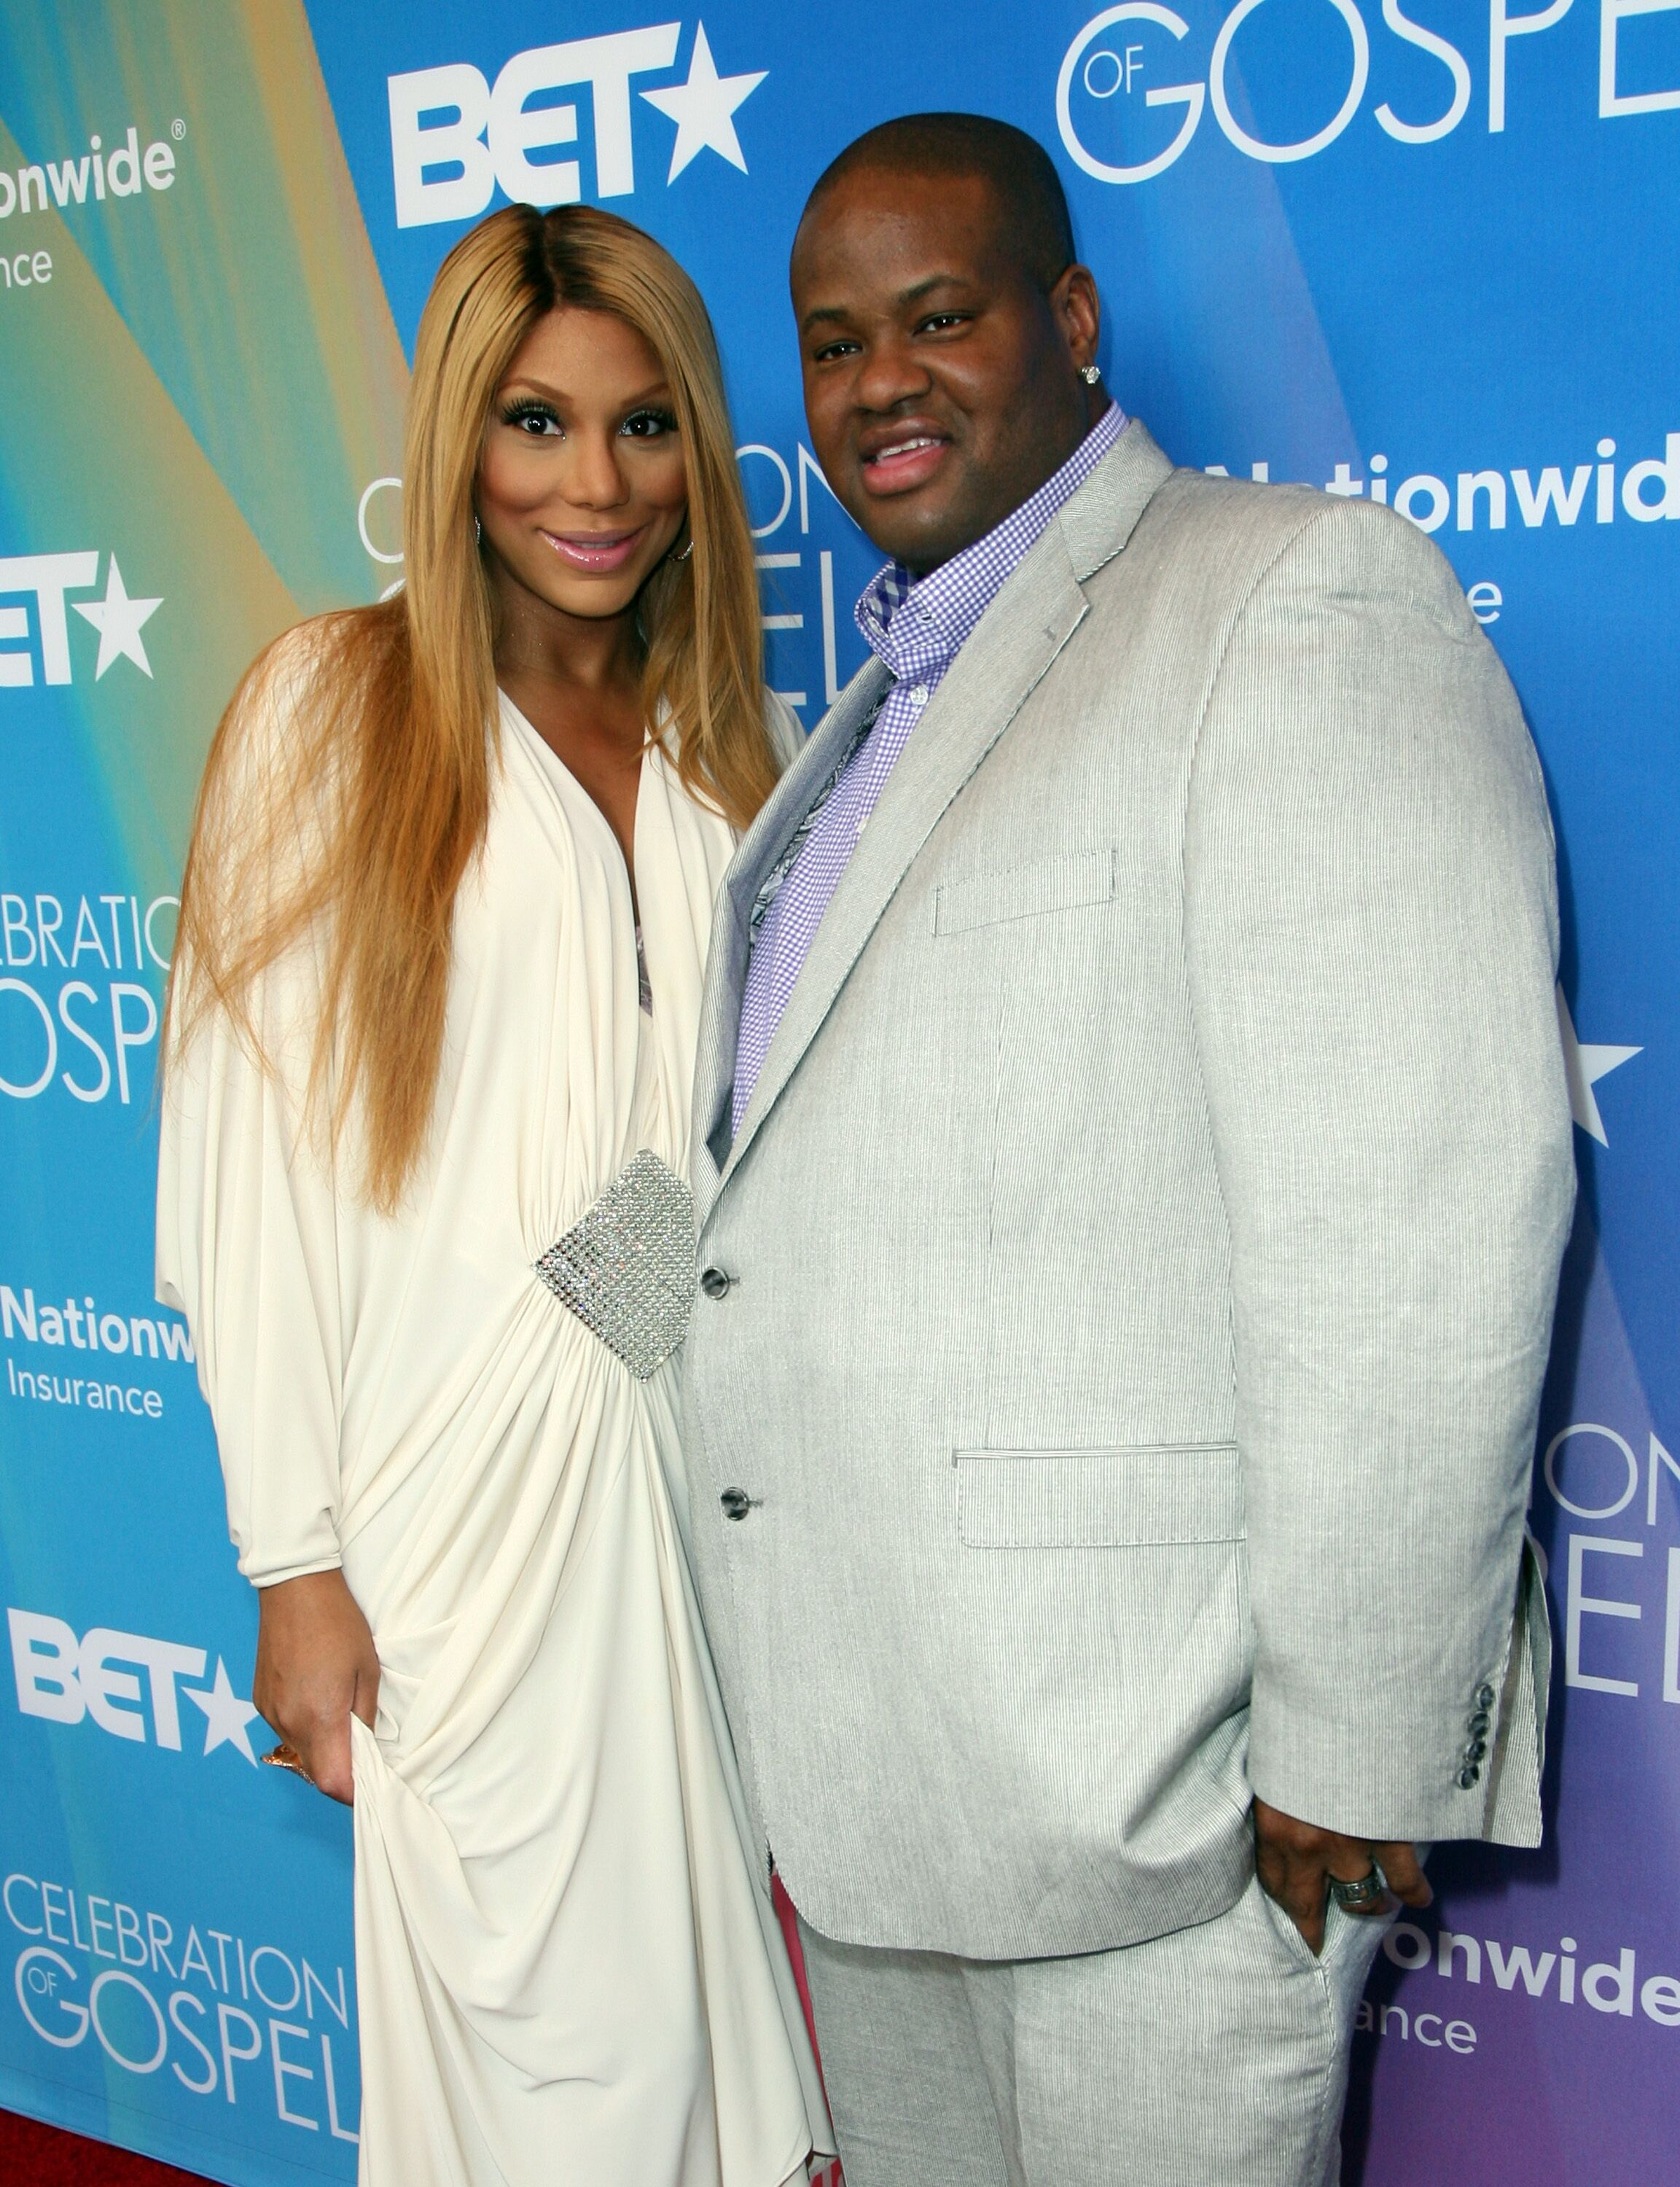 Tamar Braxton and songwriter Vincent Herbert attend the BET Celebration of Gospel 2013 at Orpheum Theatre on March 16, 2013 | Photo: Getty Images